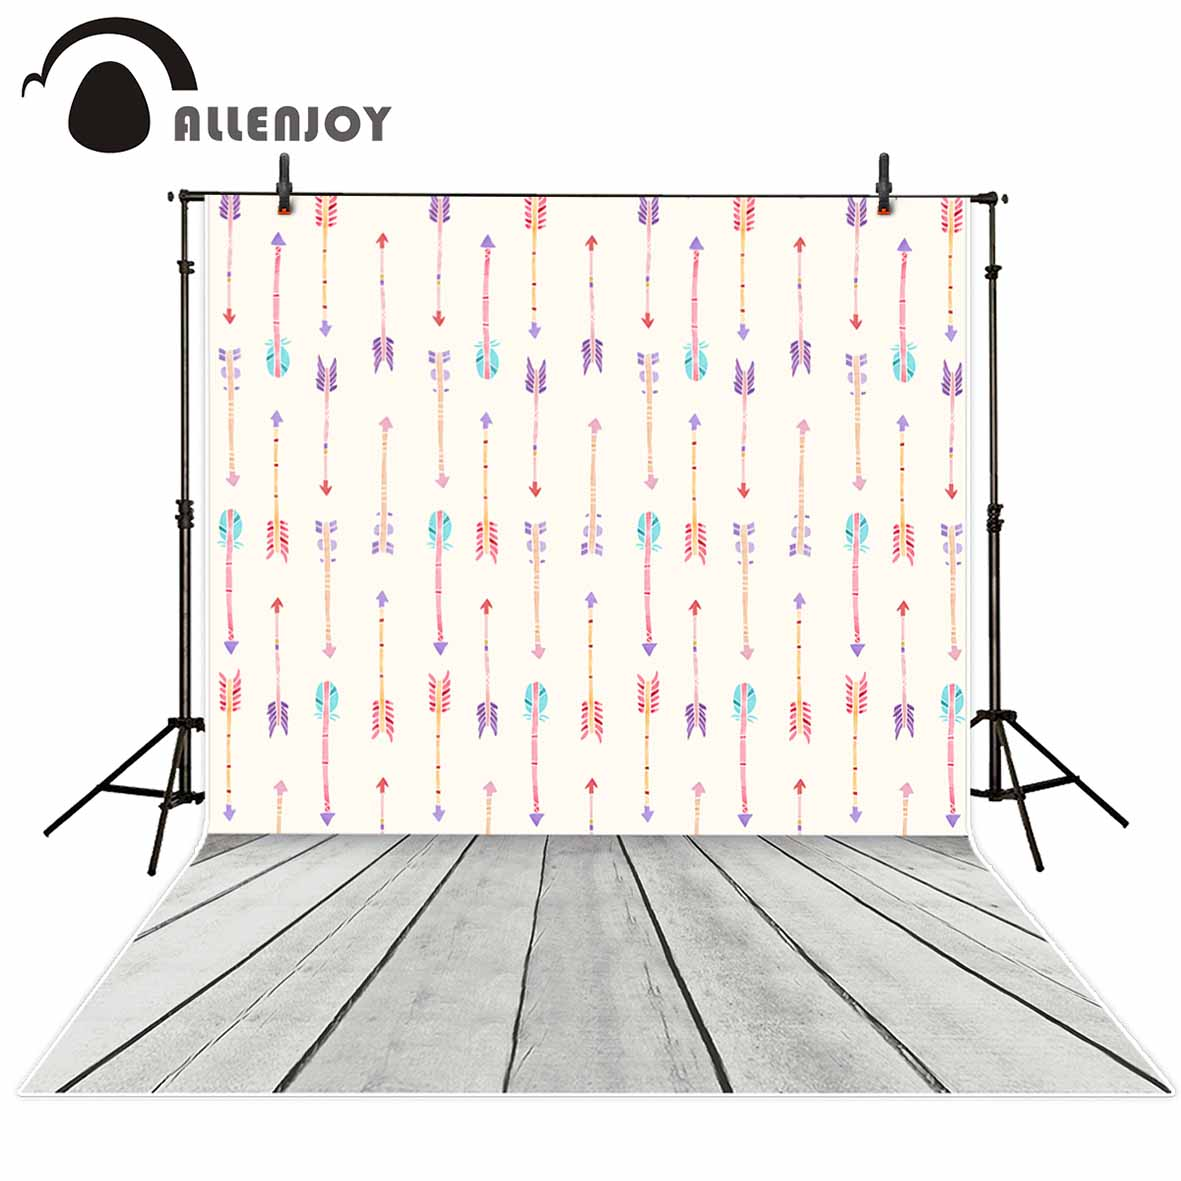 Allenjoy photography background Colorful Lovely arrows Wood floor backdrop photo studio background camera fotografica